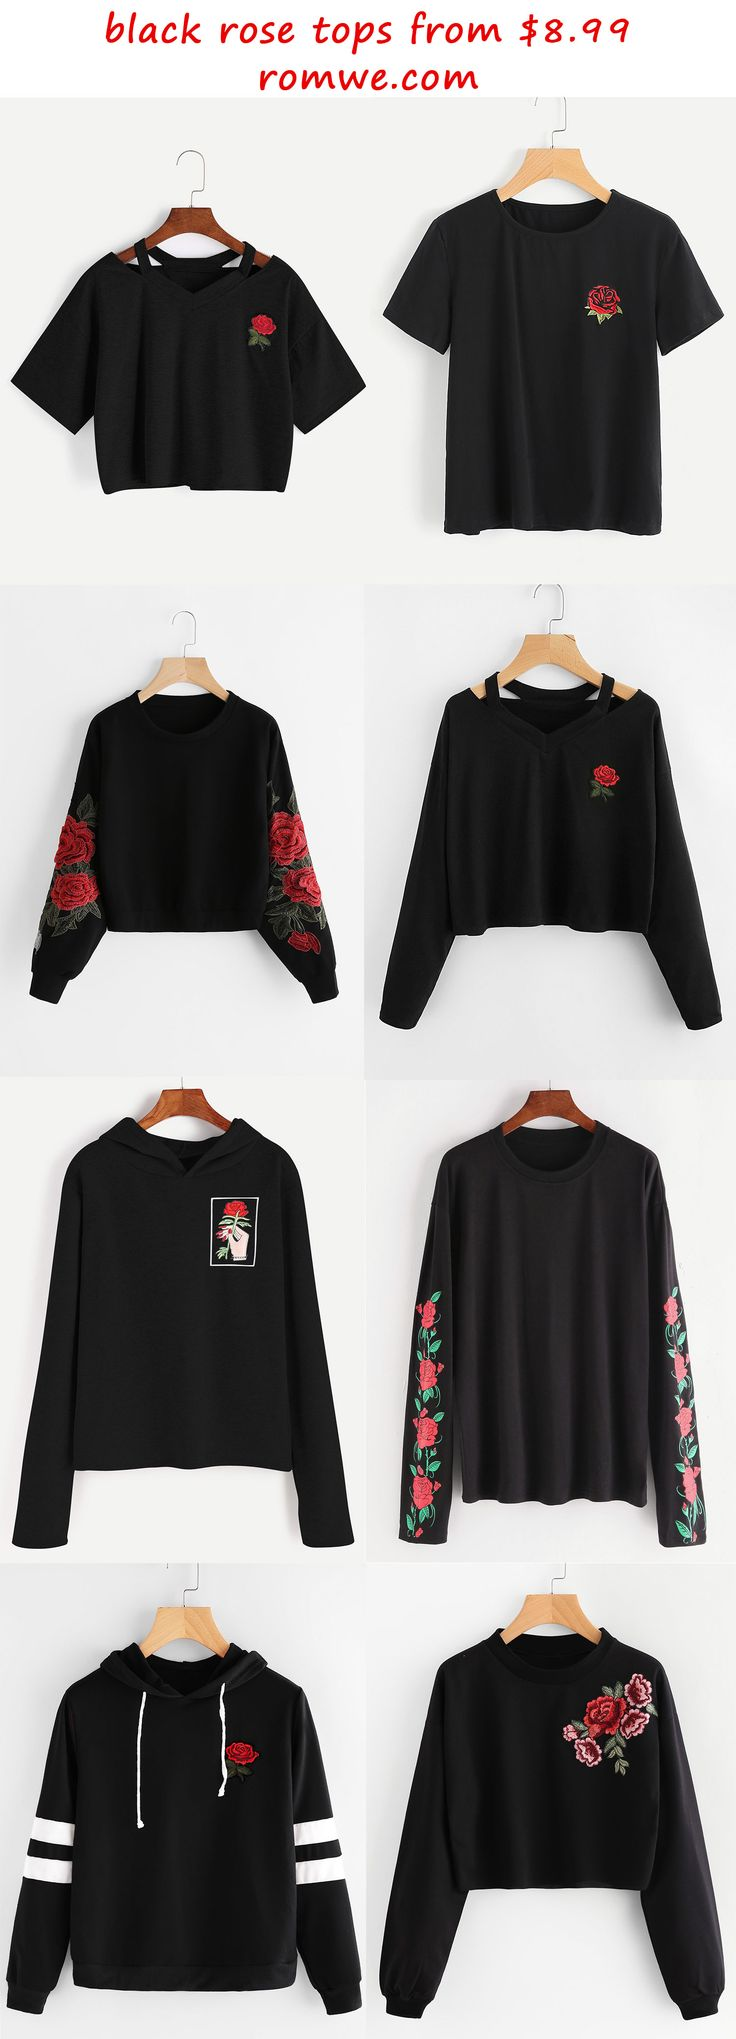 I have the first one. For the most part I would say it's a good quality shirt, but the rose is iron on so it doesn't fully stick onto the shirt, but if that doesn't bothers you then I would suggest getting it because for the price it's good quality. However, If it does bother you then I would either suggest getting it and just sewing it on or invest in a shirt that looks like it, but is guaranteed to be great quality.